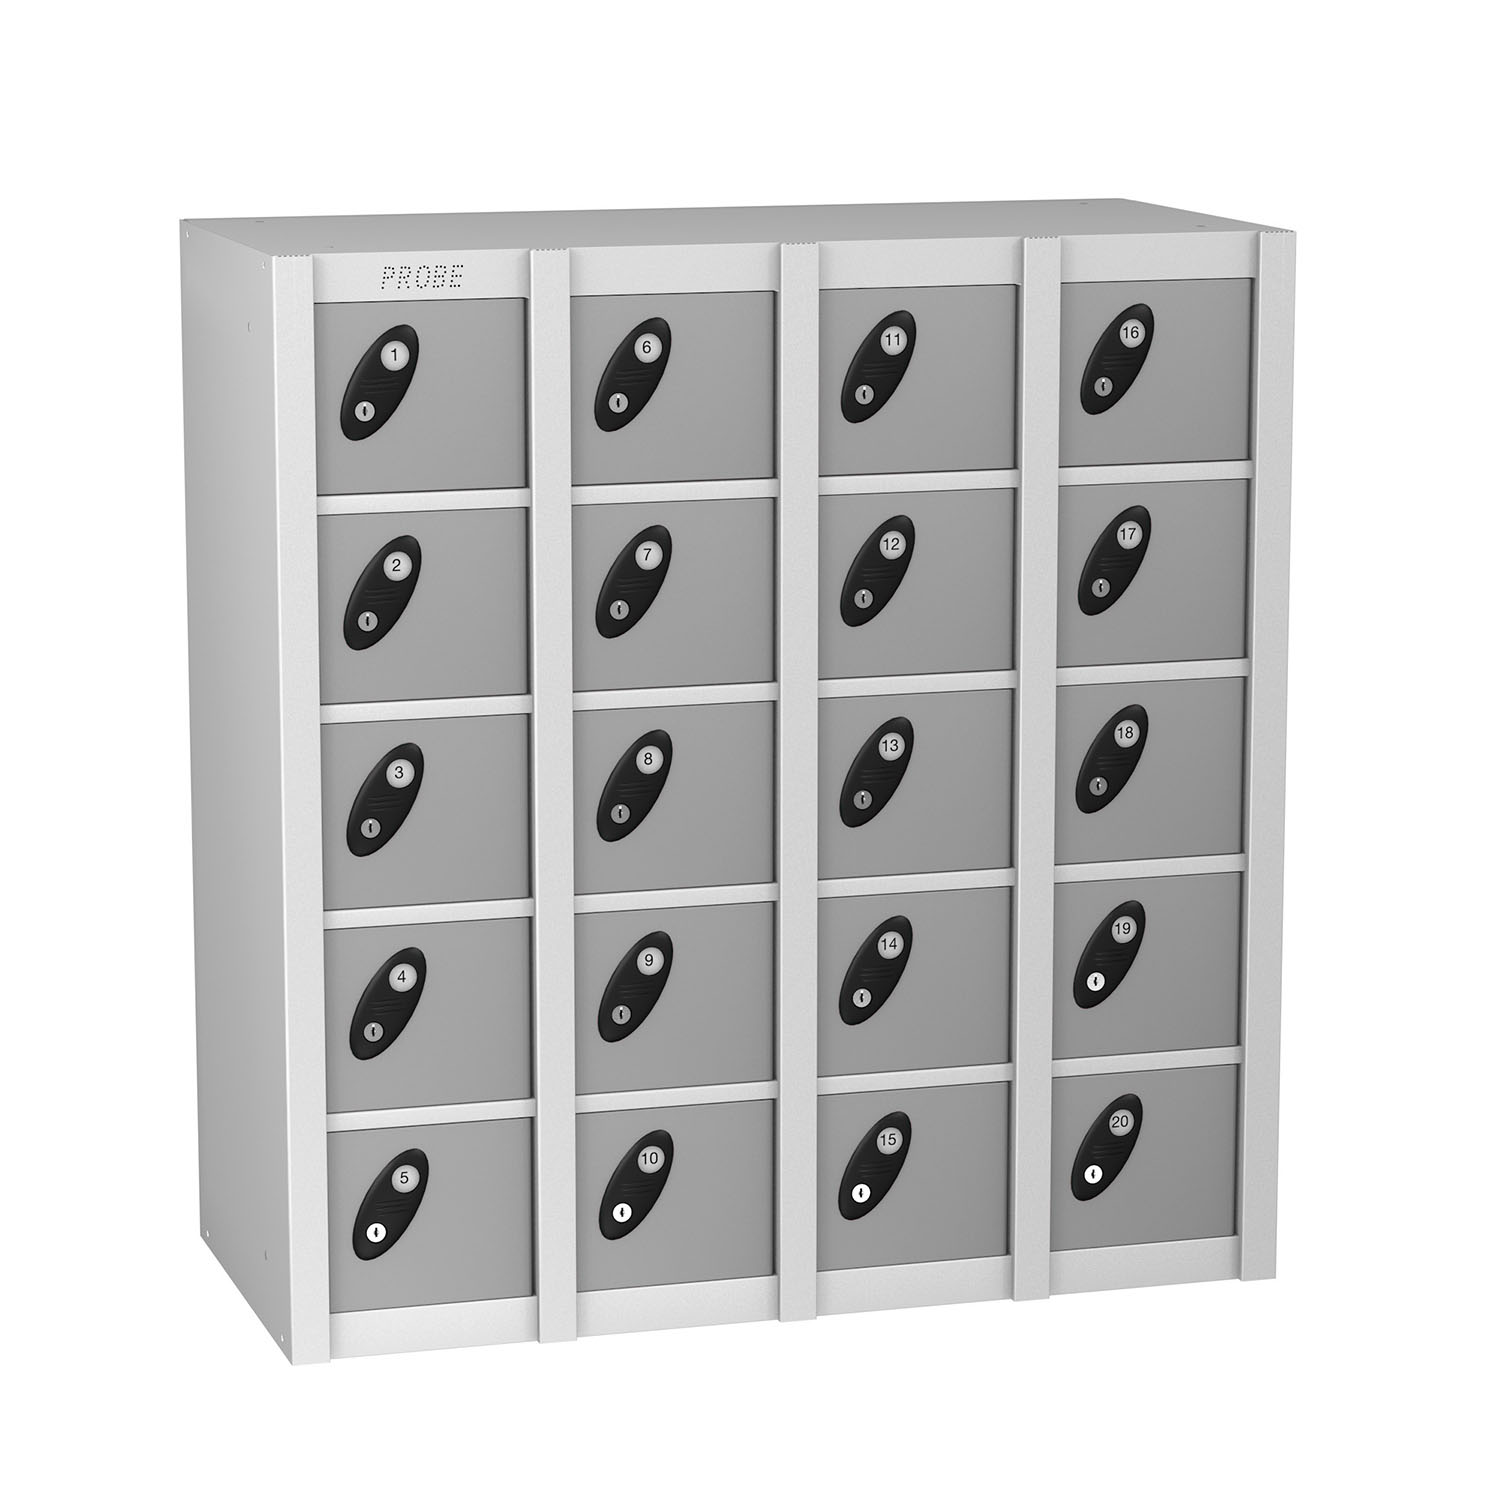 Probe 20 doors minibox lockers in silver colour